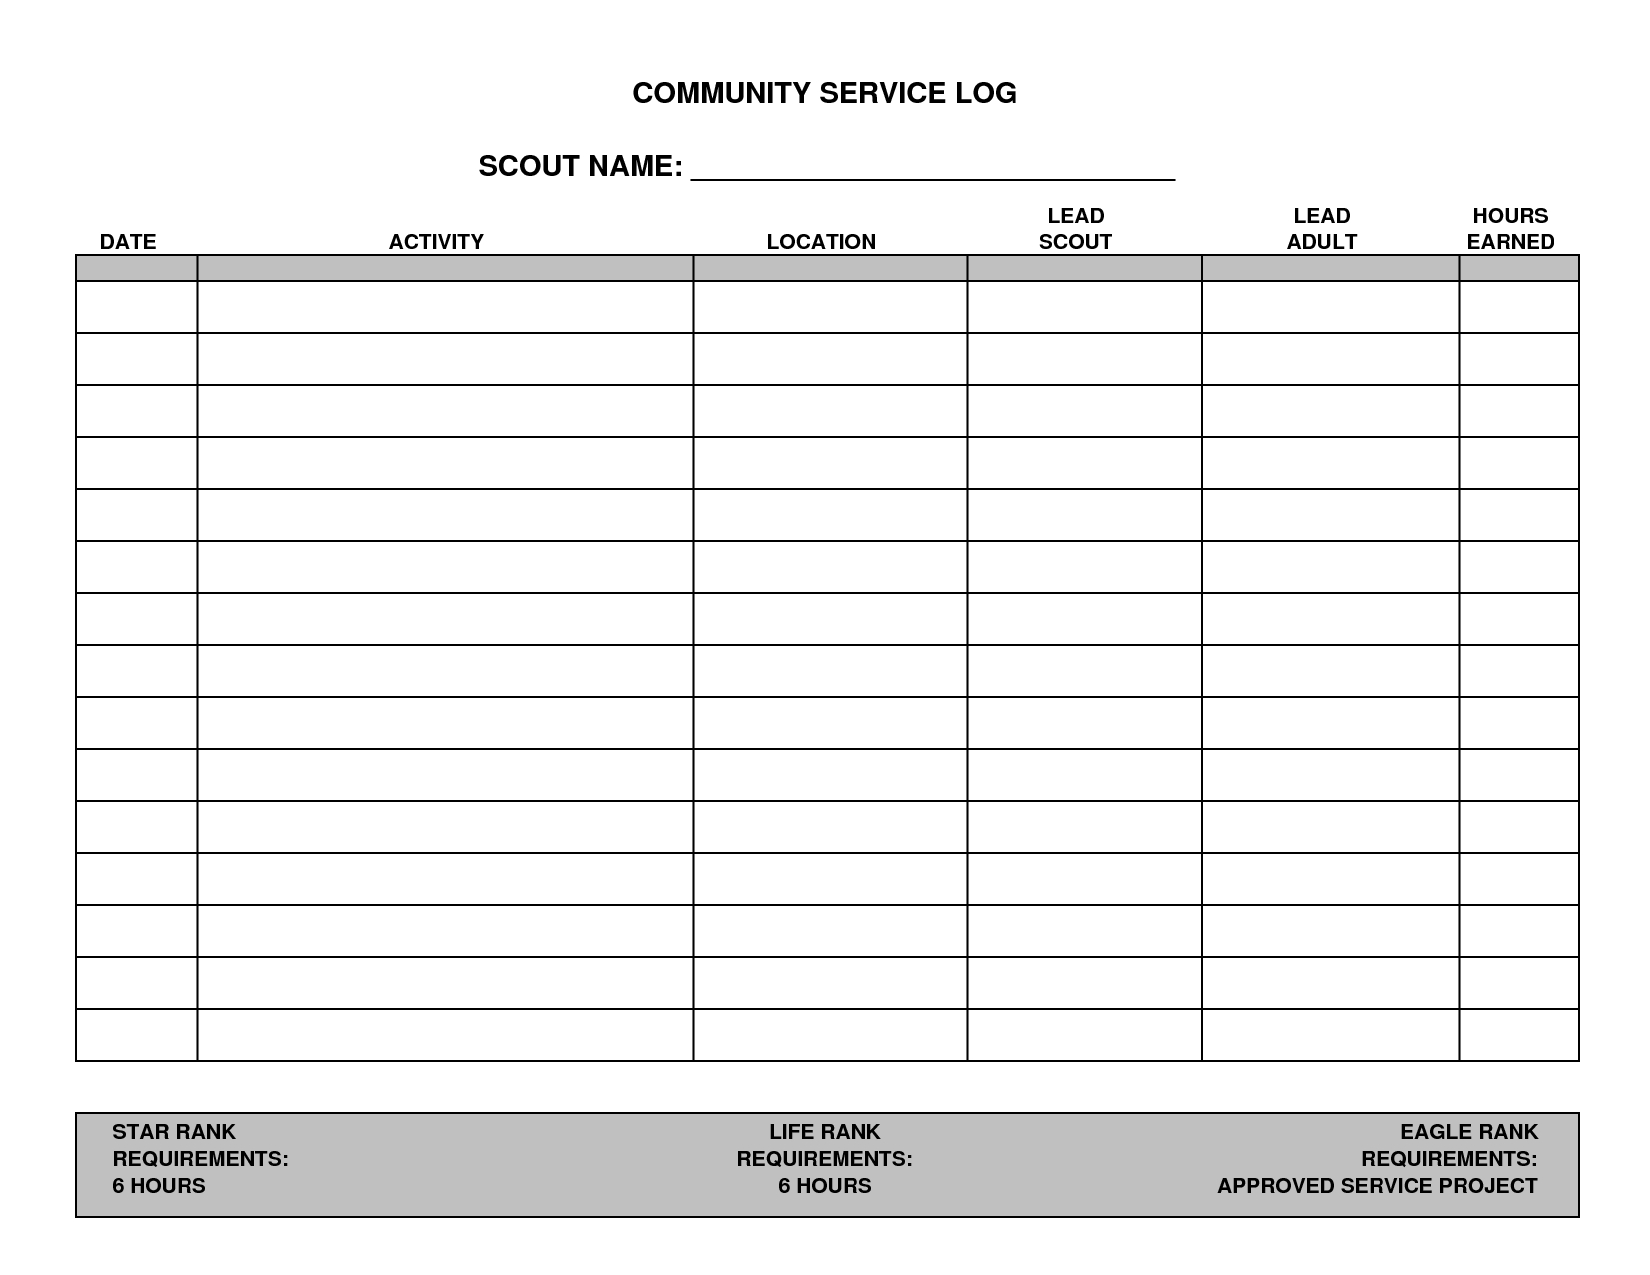 Hourly Log Template. Free Car Rental Reservation Template. Hourly - Free Printable Community Service Log Sheet